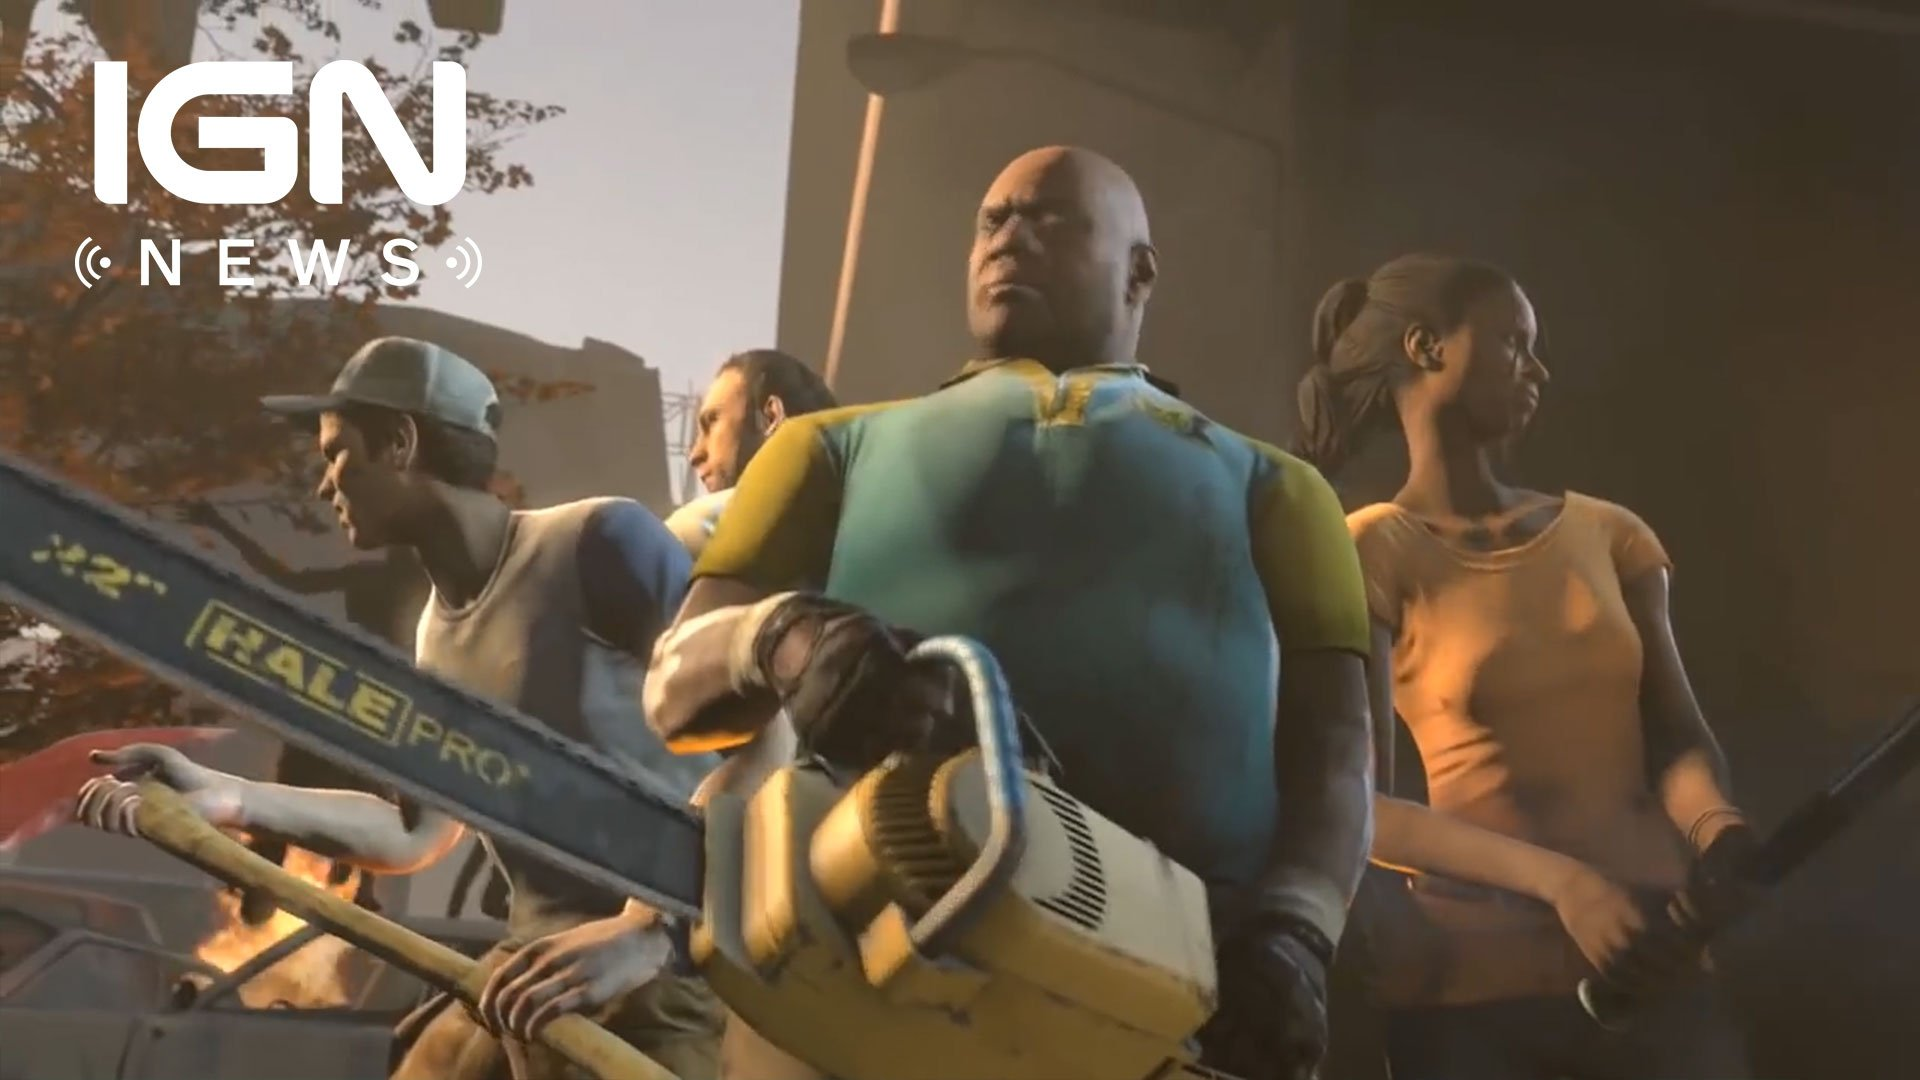 The developers of Left 4 Dead are back in the zombie game. https://t.co/HEwBHElNyL